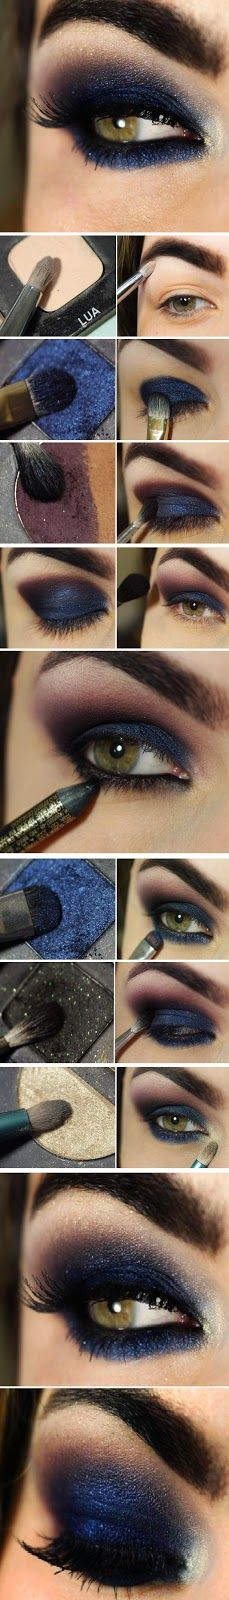 How to : Navy blue palette Makeup Tutorials - Step by Step / LoLus Makeup Fashion